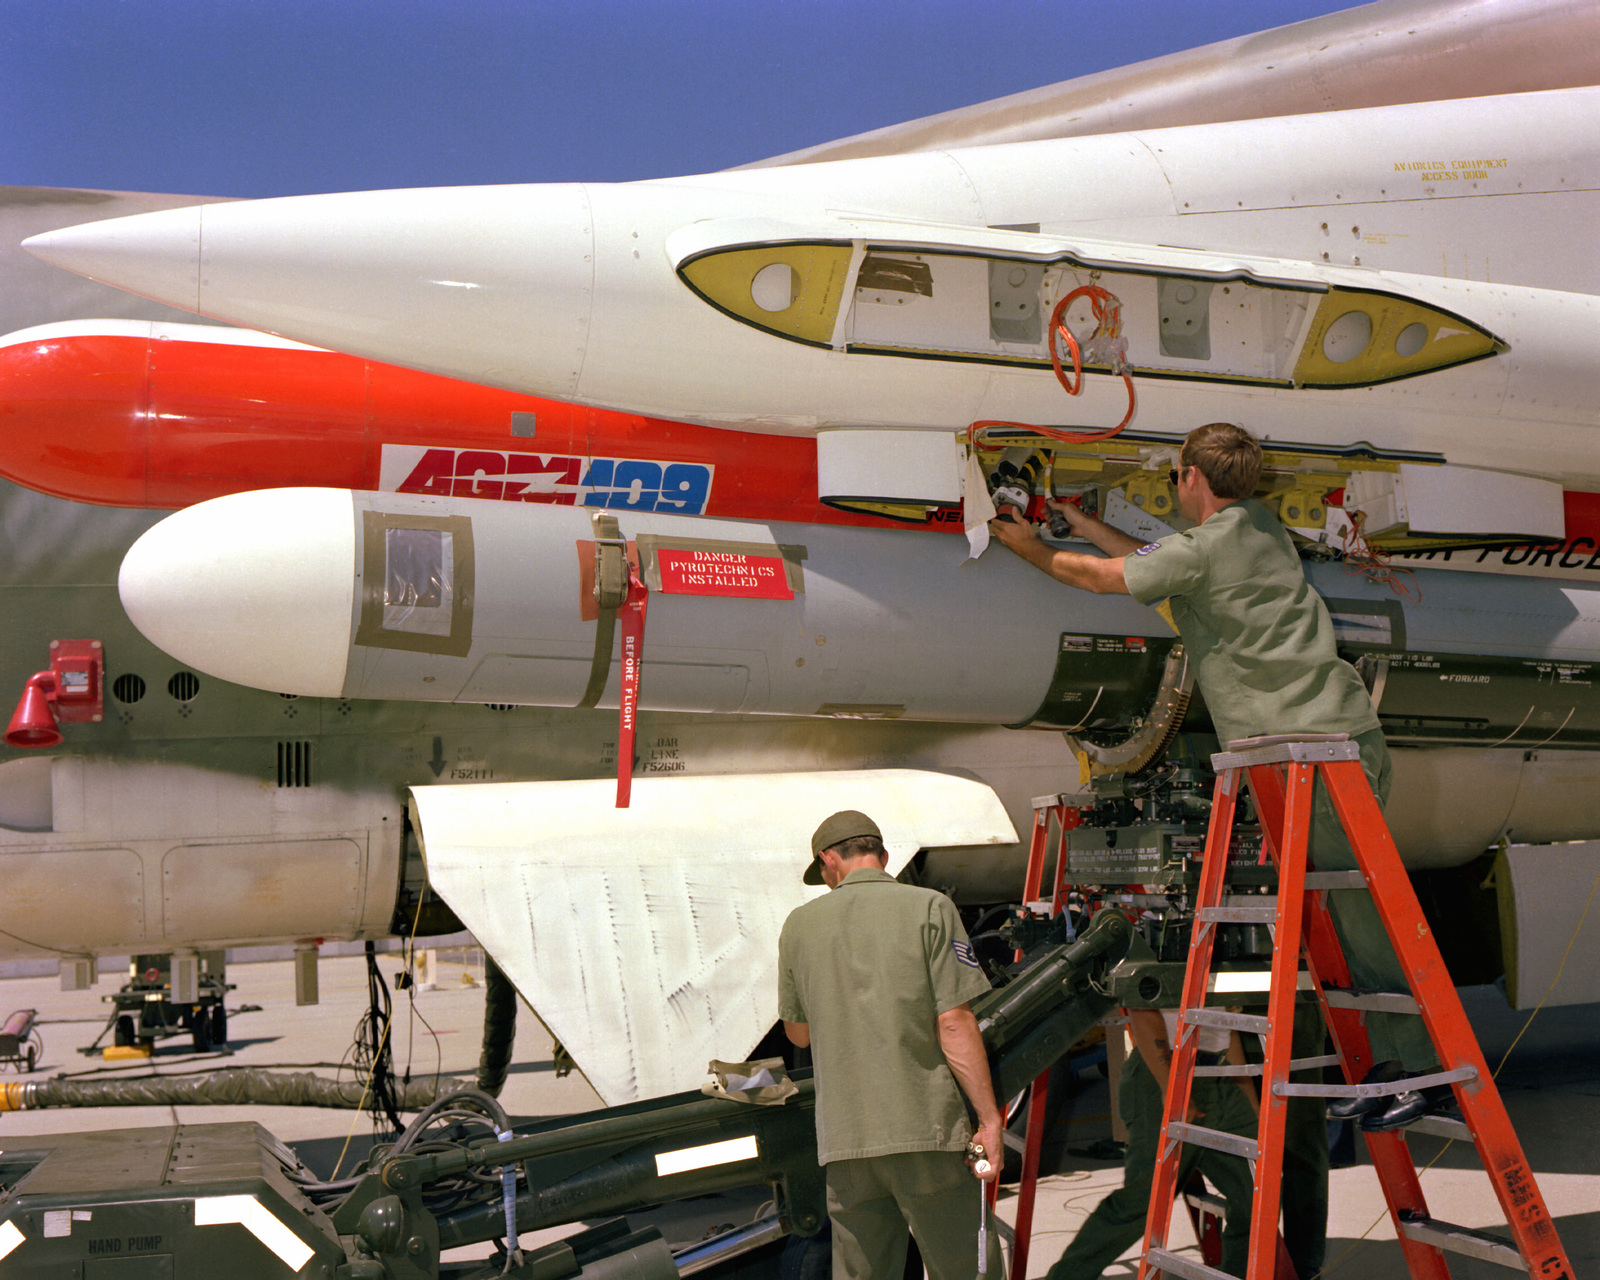 A ground crew loads AGM-109 Tomahawk air-launched cruise missiles on a B-52 Stratofortress aircraft